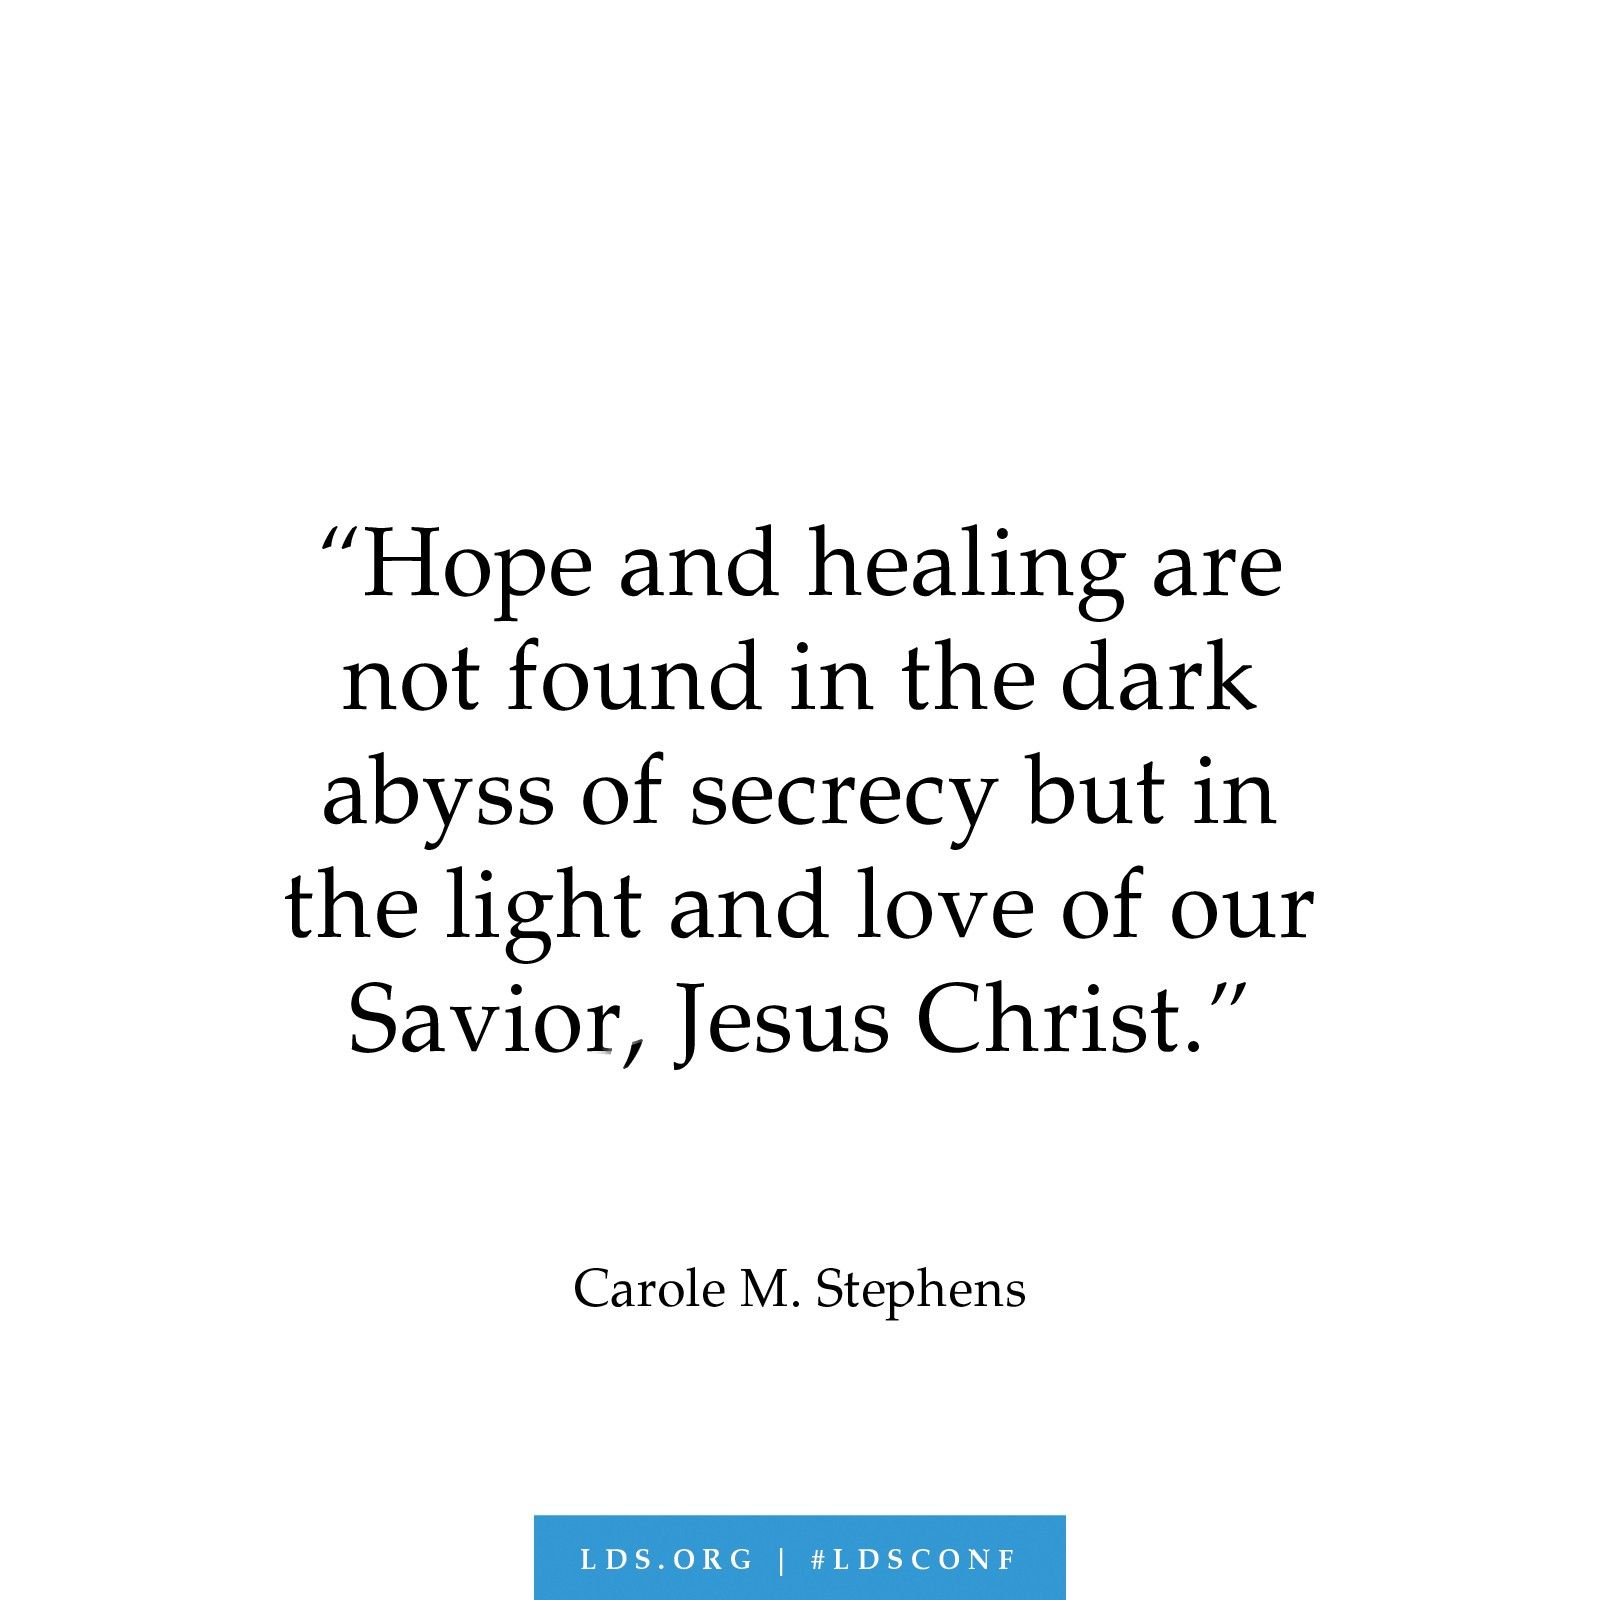 """""""Hope and healing are not found in the dark abyss of secrecy but in the light and love of our Savior, Jesus Christ.""""—Carole M. Stephens, """"The Master Healer"""""""